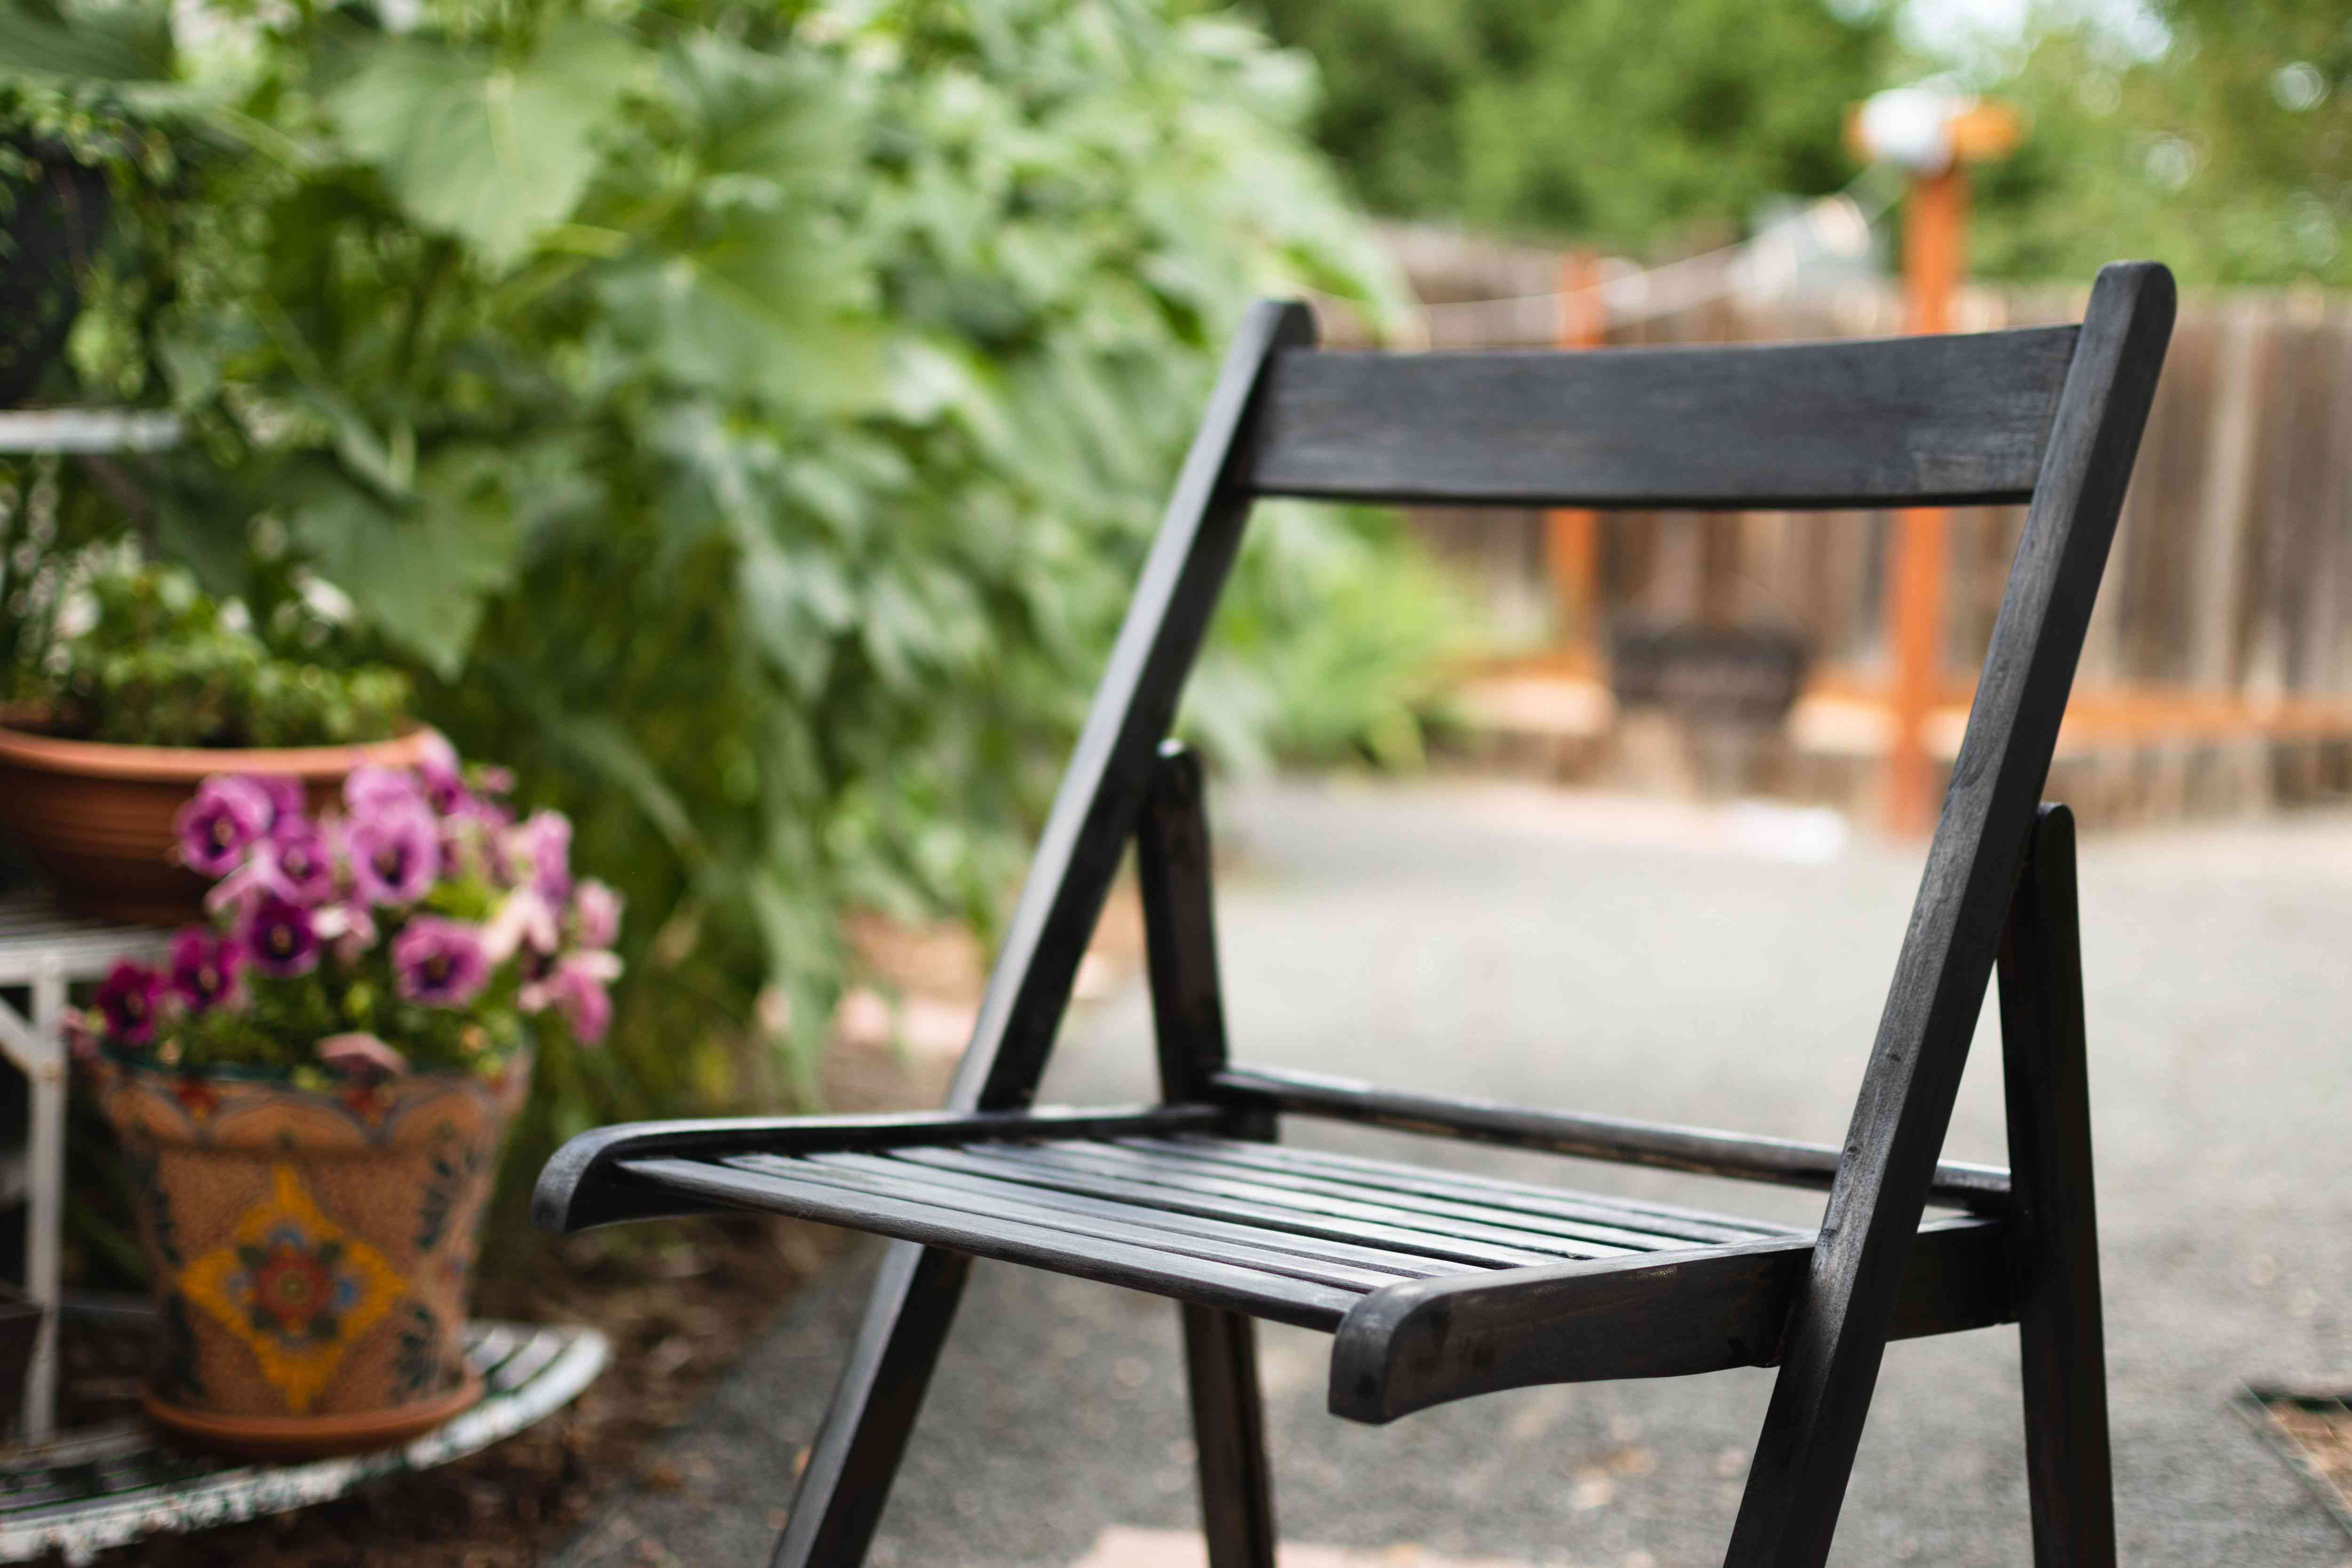 Wooden chair with fresh black stain sitting out to dry